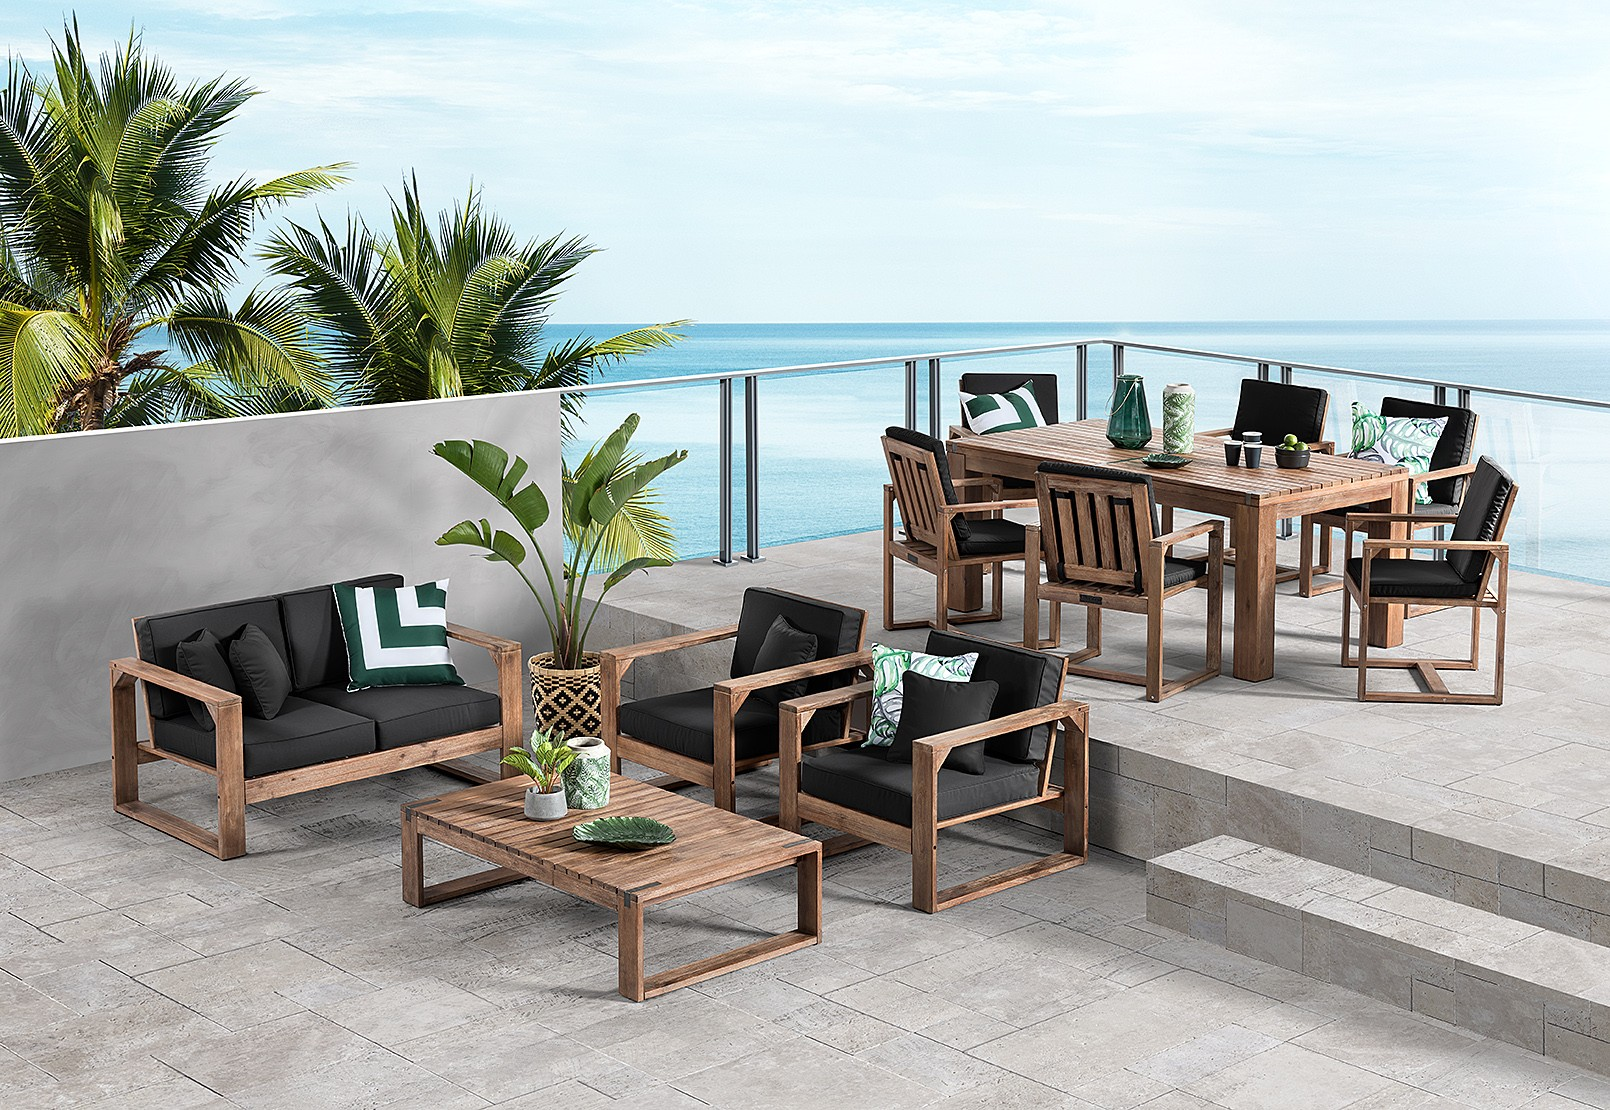 Outdoor Furniture Market Global Insights And Trends 2018 Insider throughout Outdoor Furniture